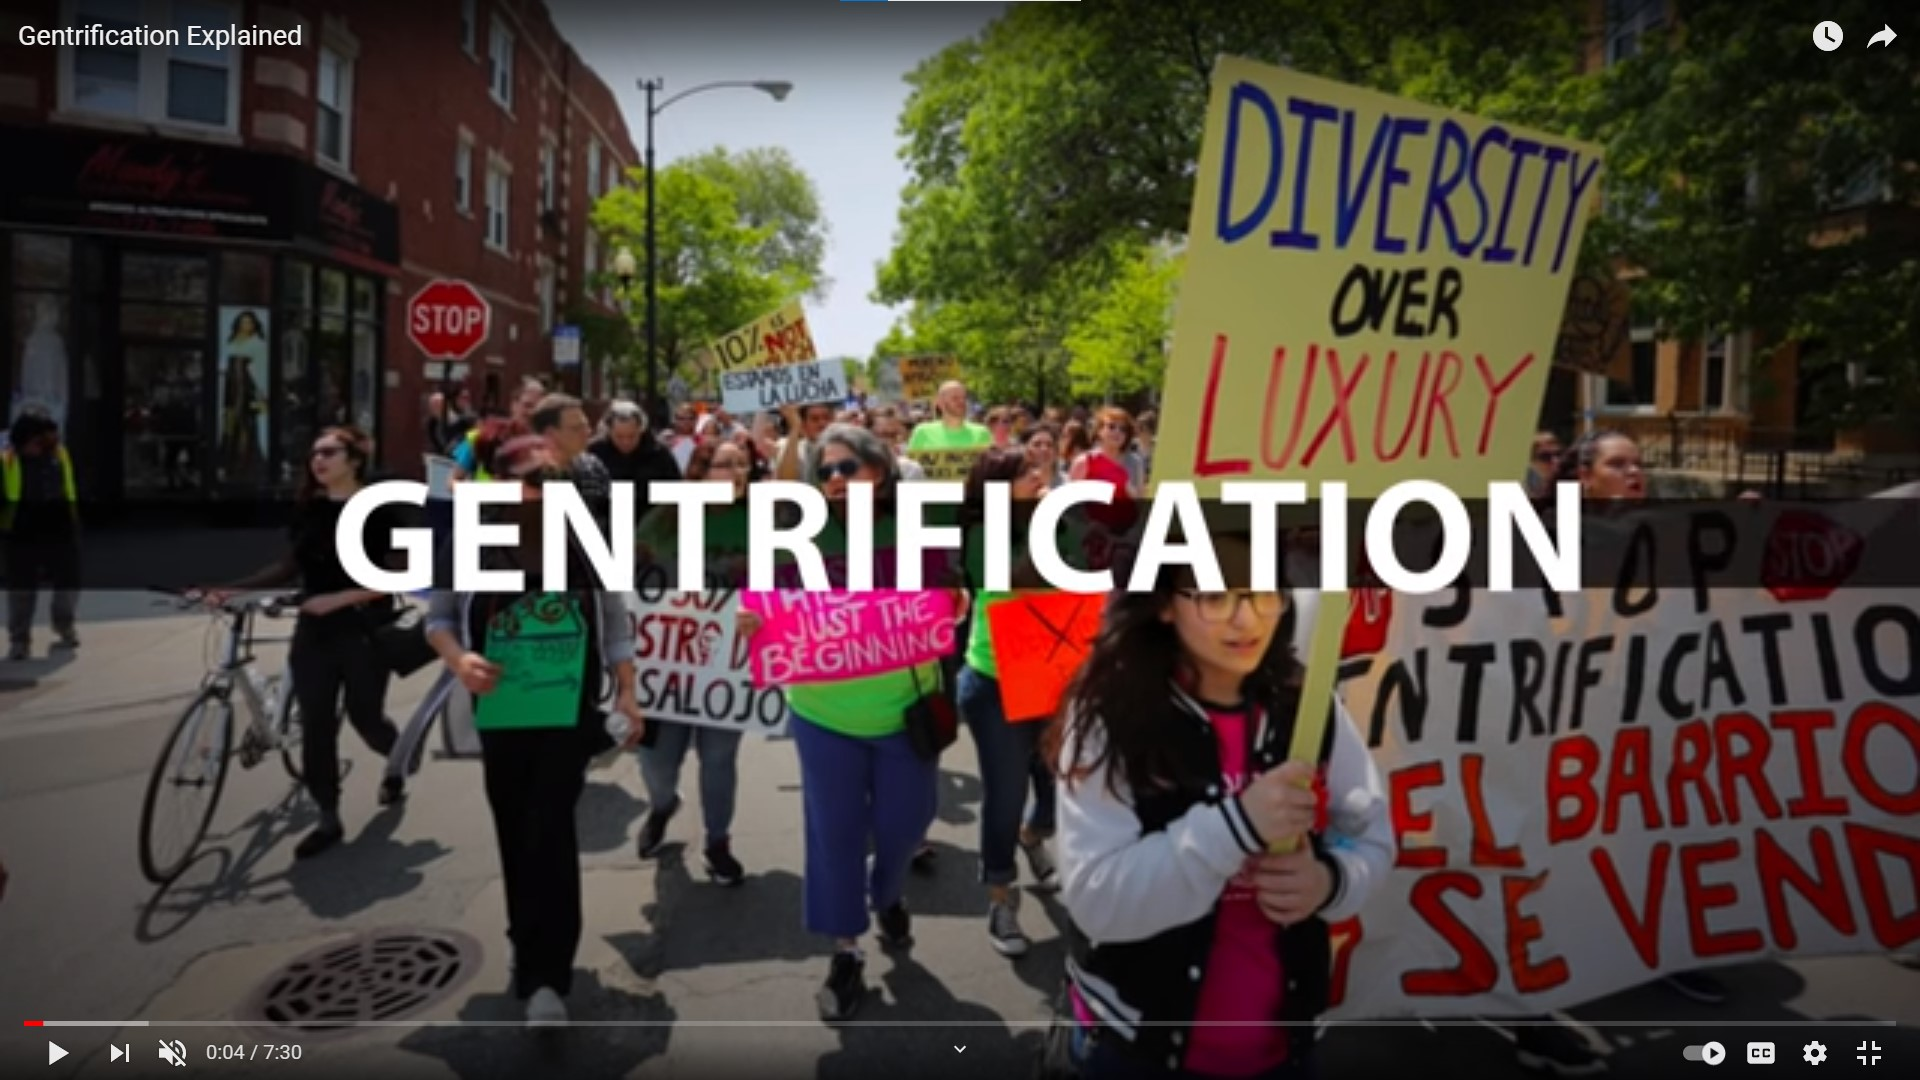 Image of people marching in protest against gentrification.